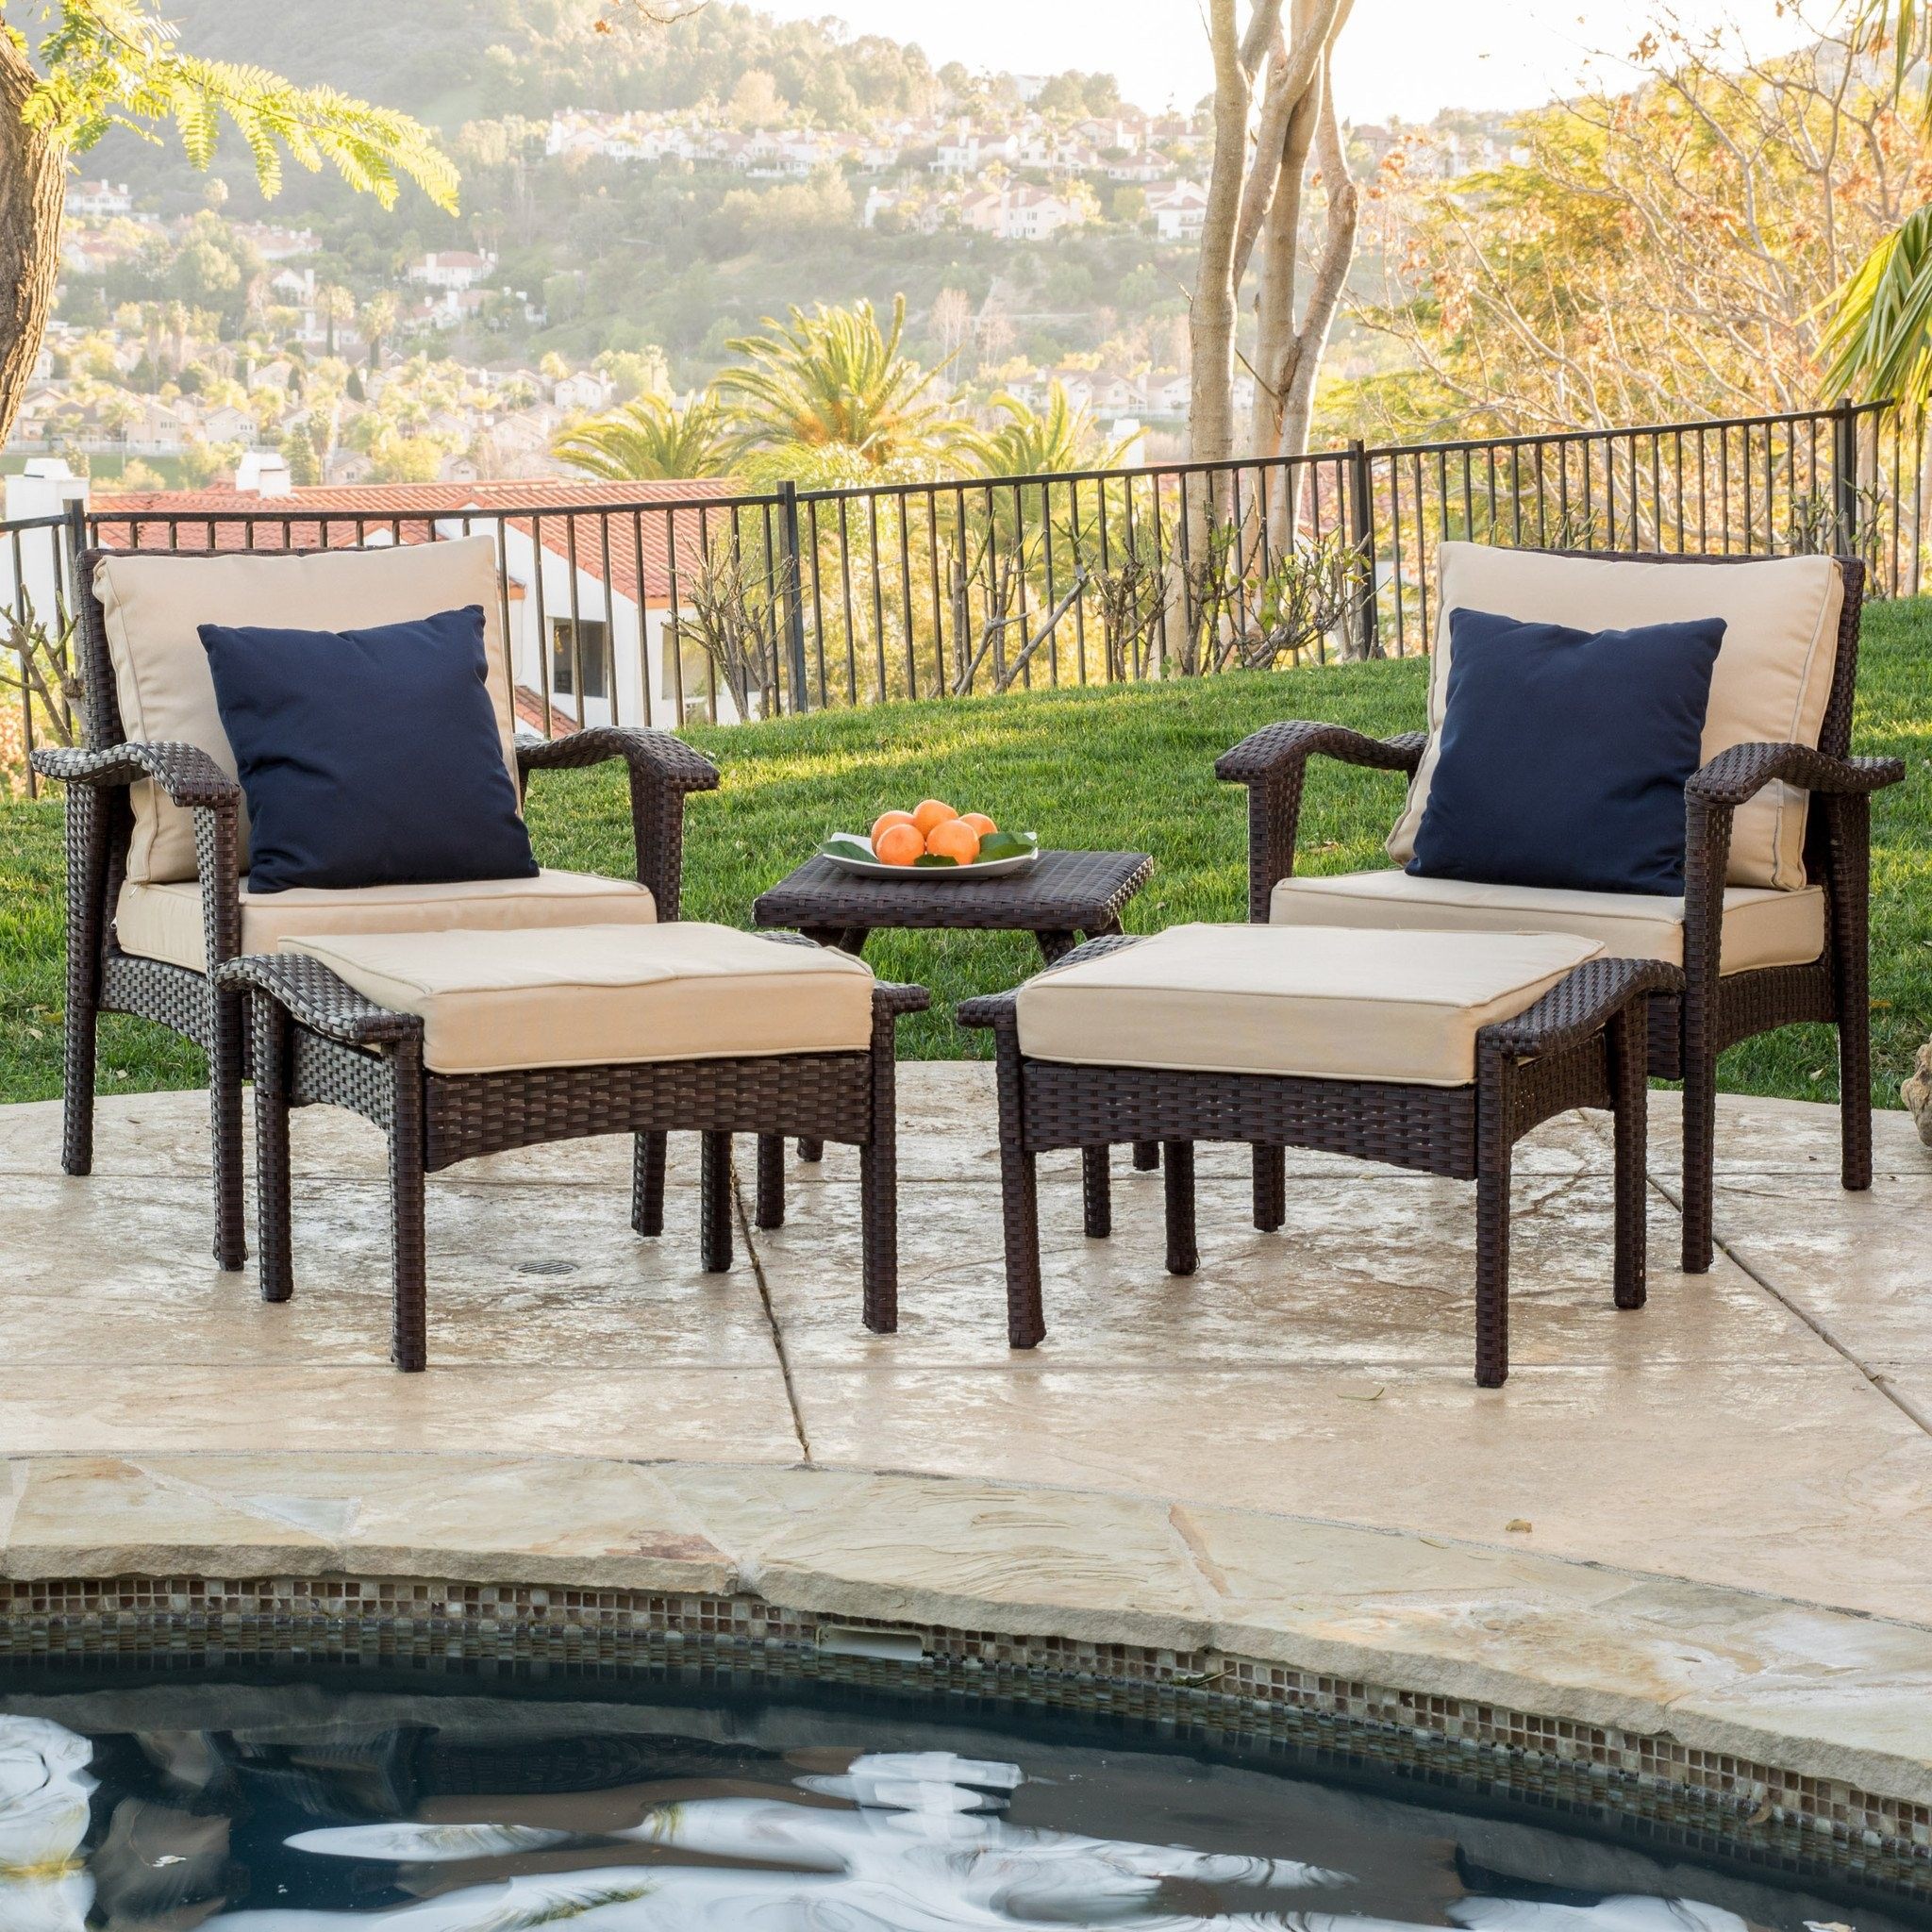 Maui Outdoor 5-piece Brown Wicker Seating Set with...